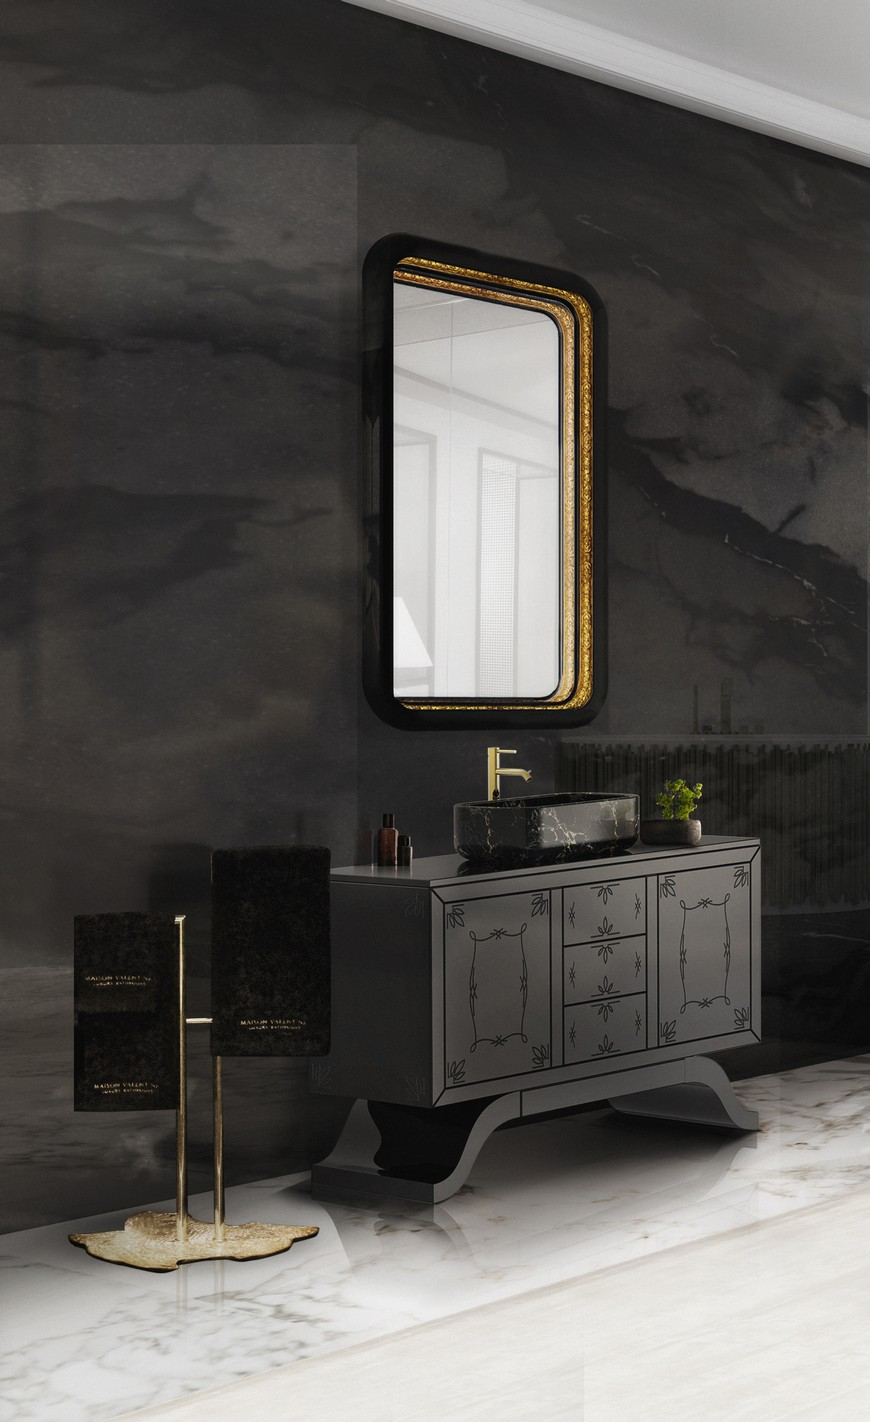 Any Luxury Bathroom Design Needs These 7 Stunning Bathroom Vanities luxury bathroom design Any Luxury Bathroom Design Needs These 7 Stunning  Bathroom Vanities Any Luxury Bathroom Design Needs These 7 Stunning Bathroom Vanities 2